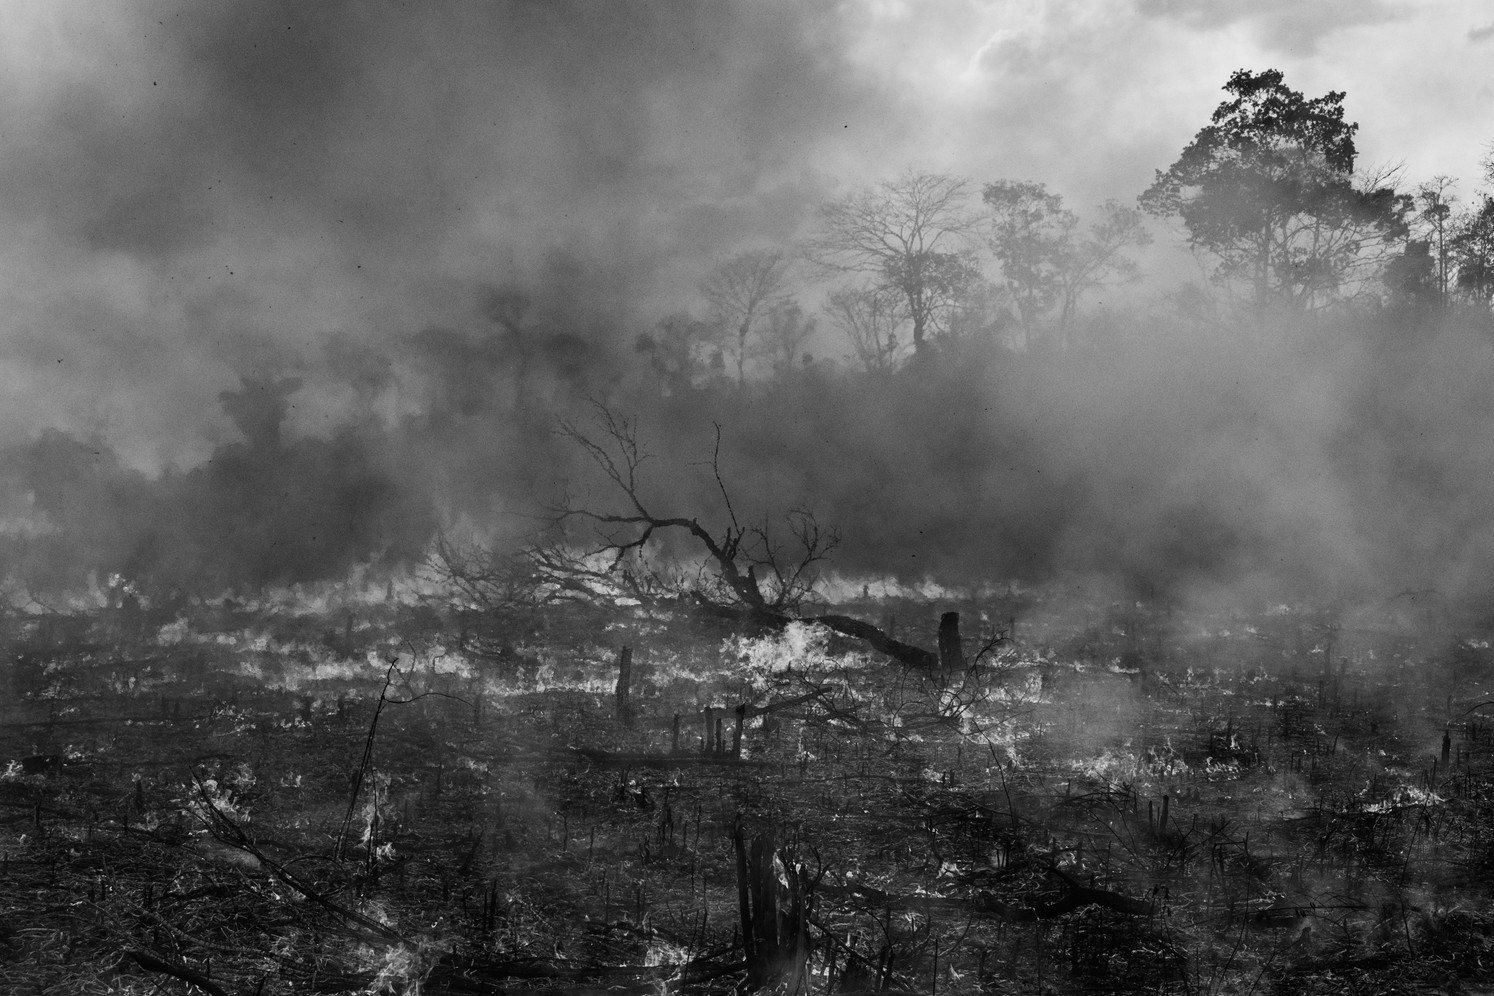 A fire rages on the Porquinhos indigenous land, home to the Canela Apanyekrá tribe, in Maranhão state. This fire was started as a training exercise for local indigenous agents of Prevfogo, a fire prevention unit of the Brazilian Institute of Environment and Renewable Natural Resources (Ibama). Fire is used in traditional farming practices to replenish soils after crops have been harvested. But often, with strong winds, the fires spread out of control and destroy forests and vegetation. This is a problem that scientists say is getting worse with the extreme weather conditions of climate change where dry seasons are becoming more intense and extended.